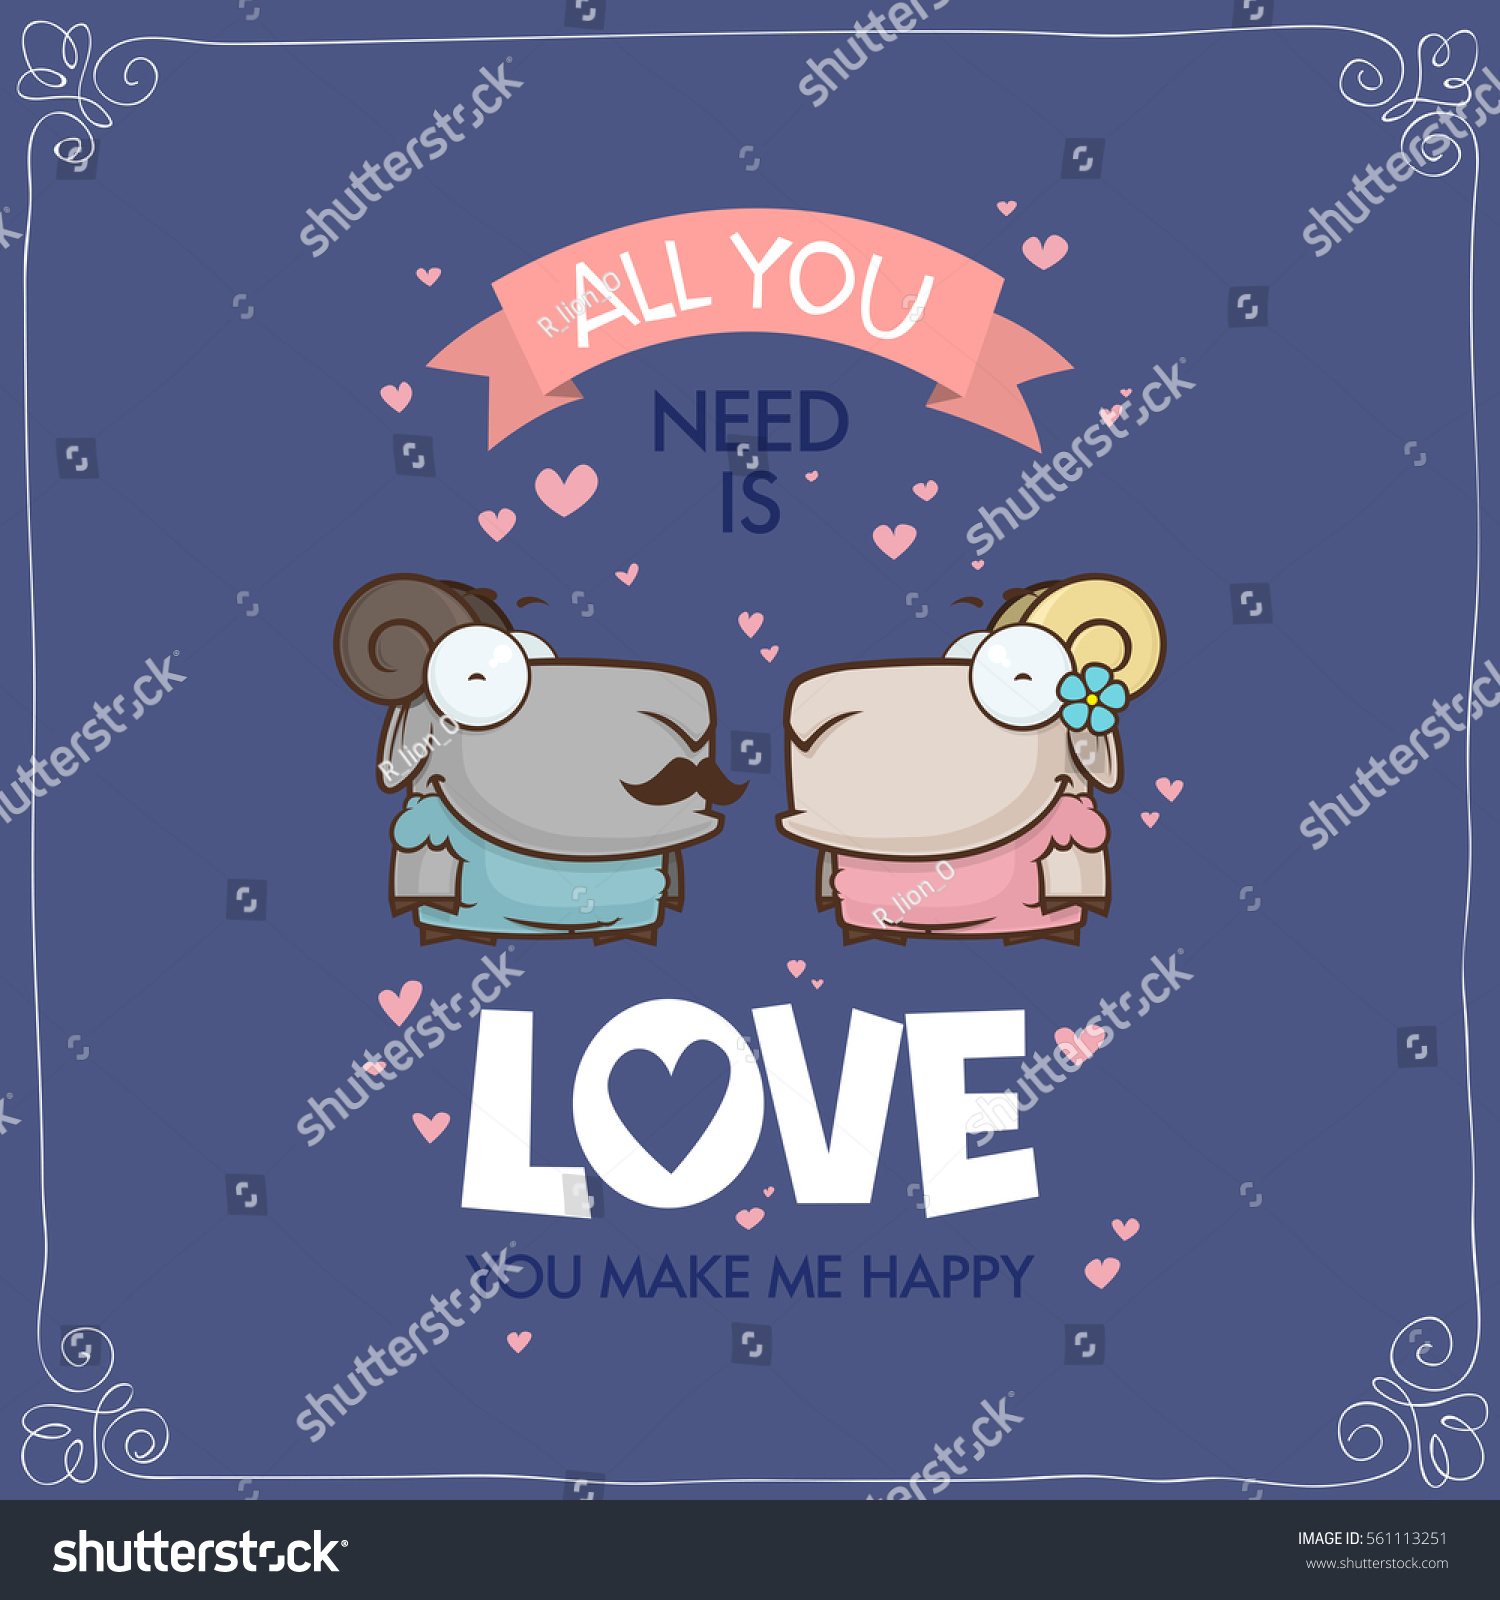 Romantic greeting card funny animal characters stock vector romantic greeting card with funny animal characters kristyandbryce Choice Image